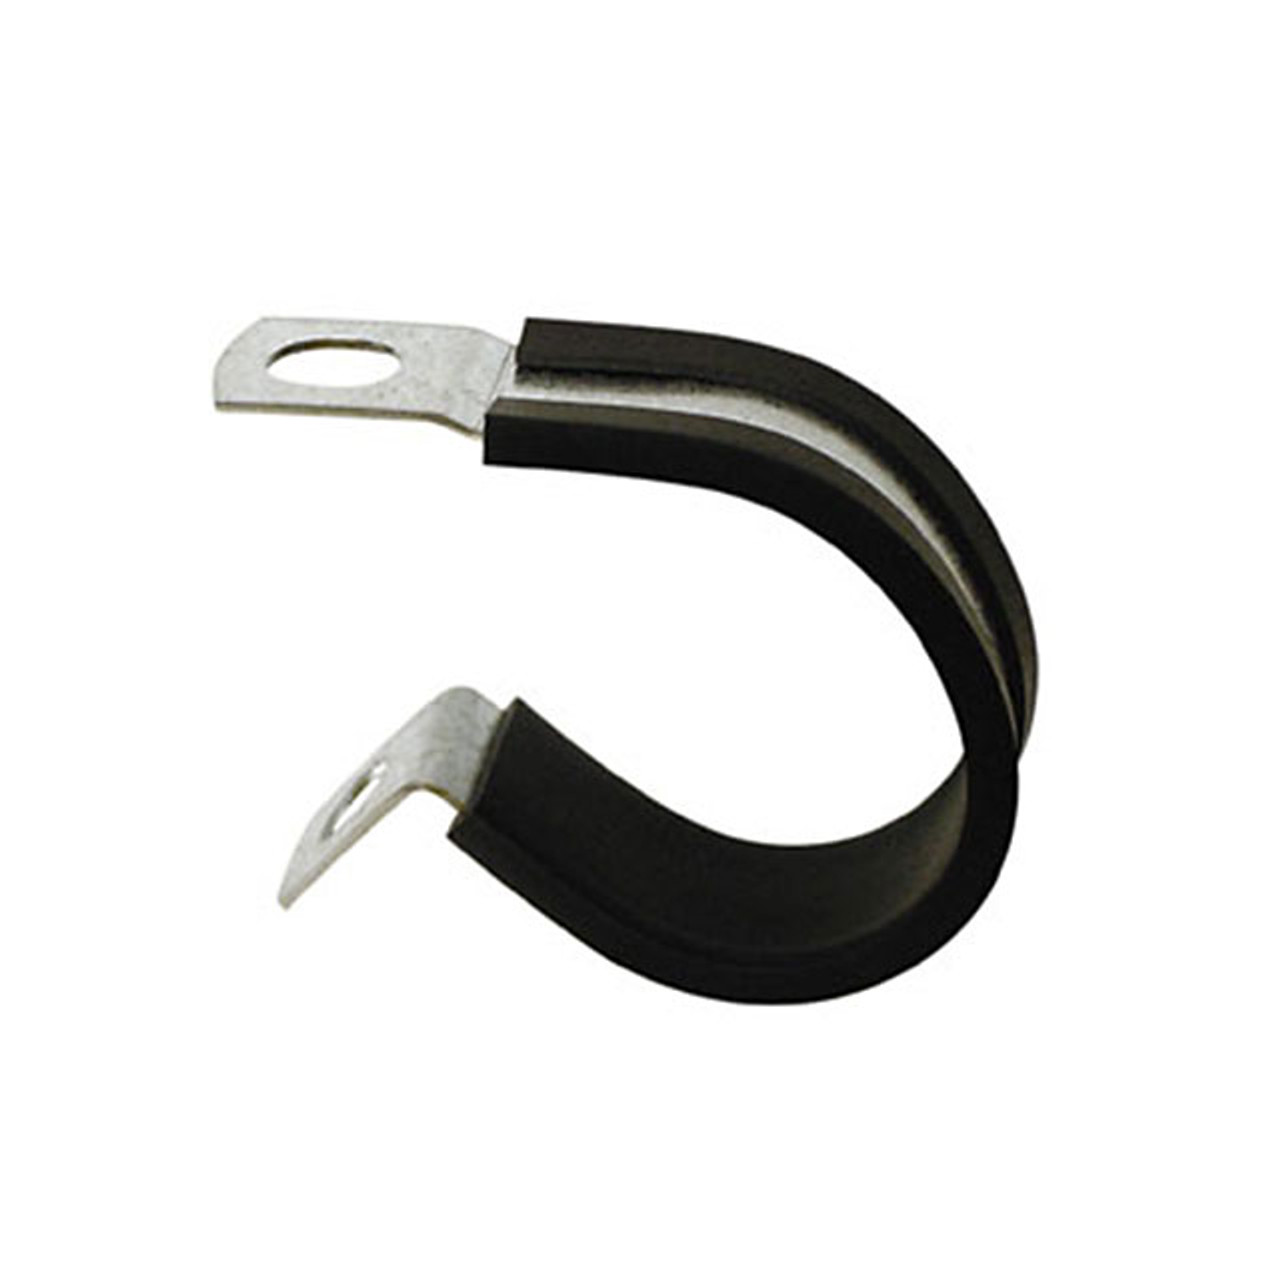 CUSHION CABLE CLAMP 1 1/2